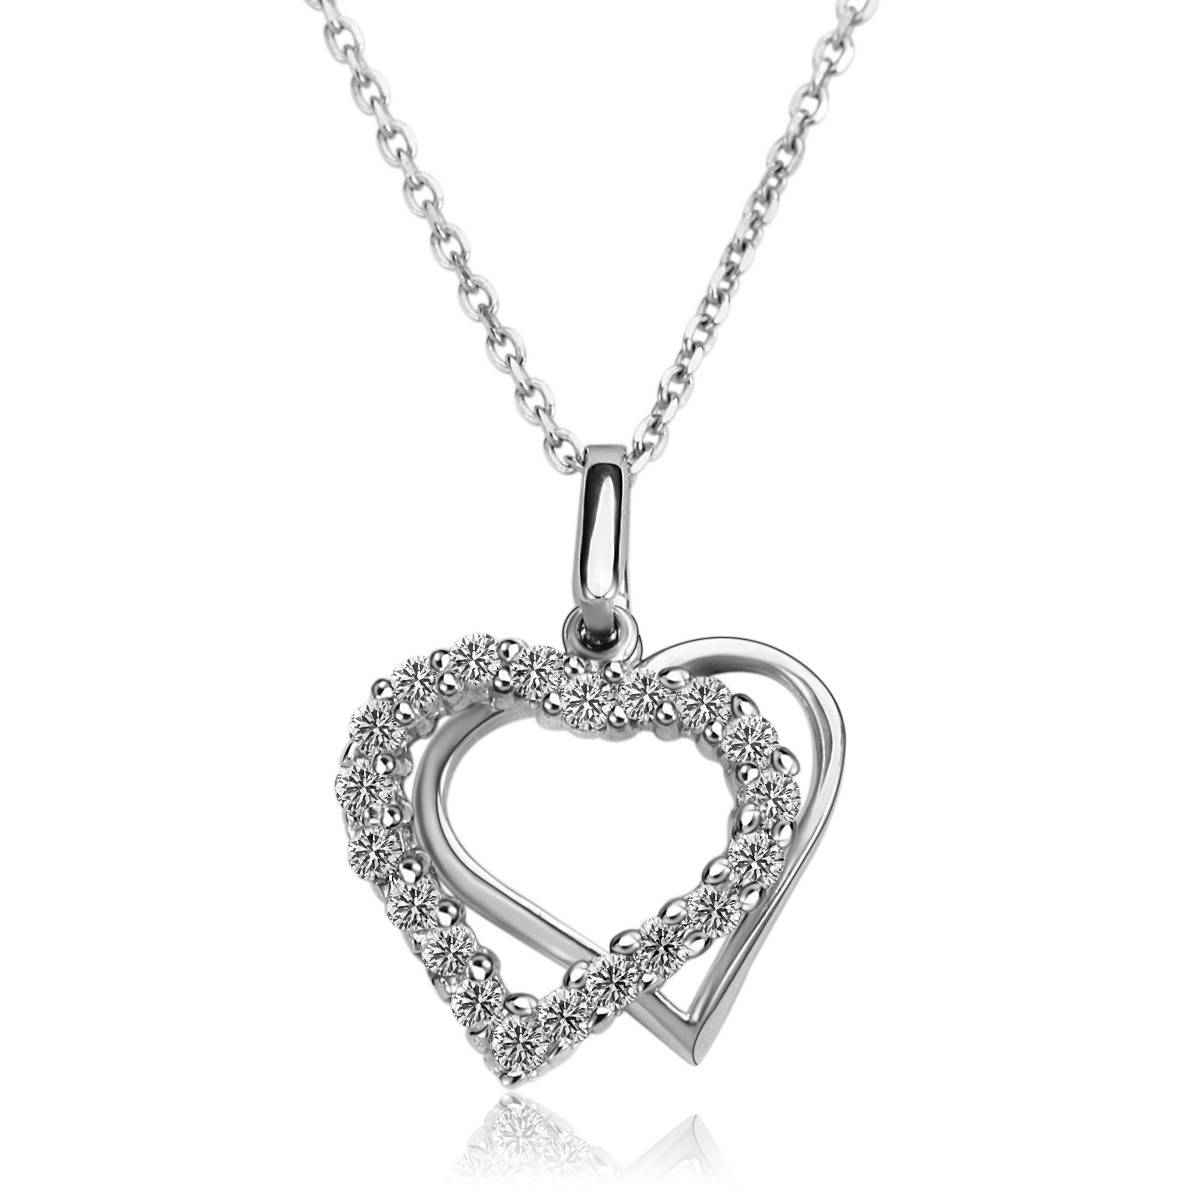 Wholesale Women Fashion Necklace 925 Silver Necklace Double Heart S925 Silver Pendant Micro Setting